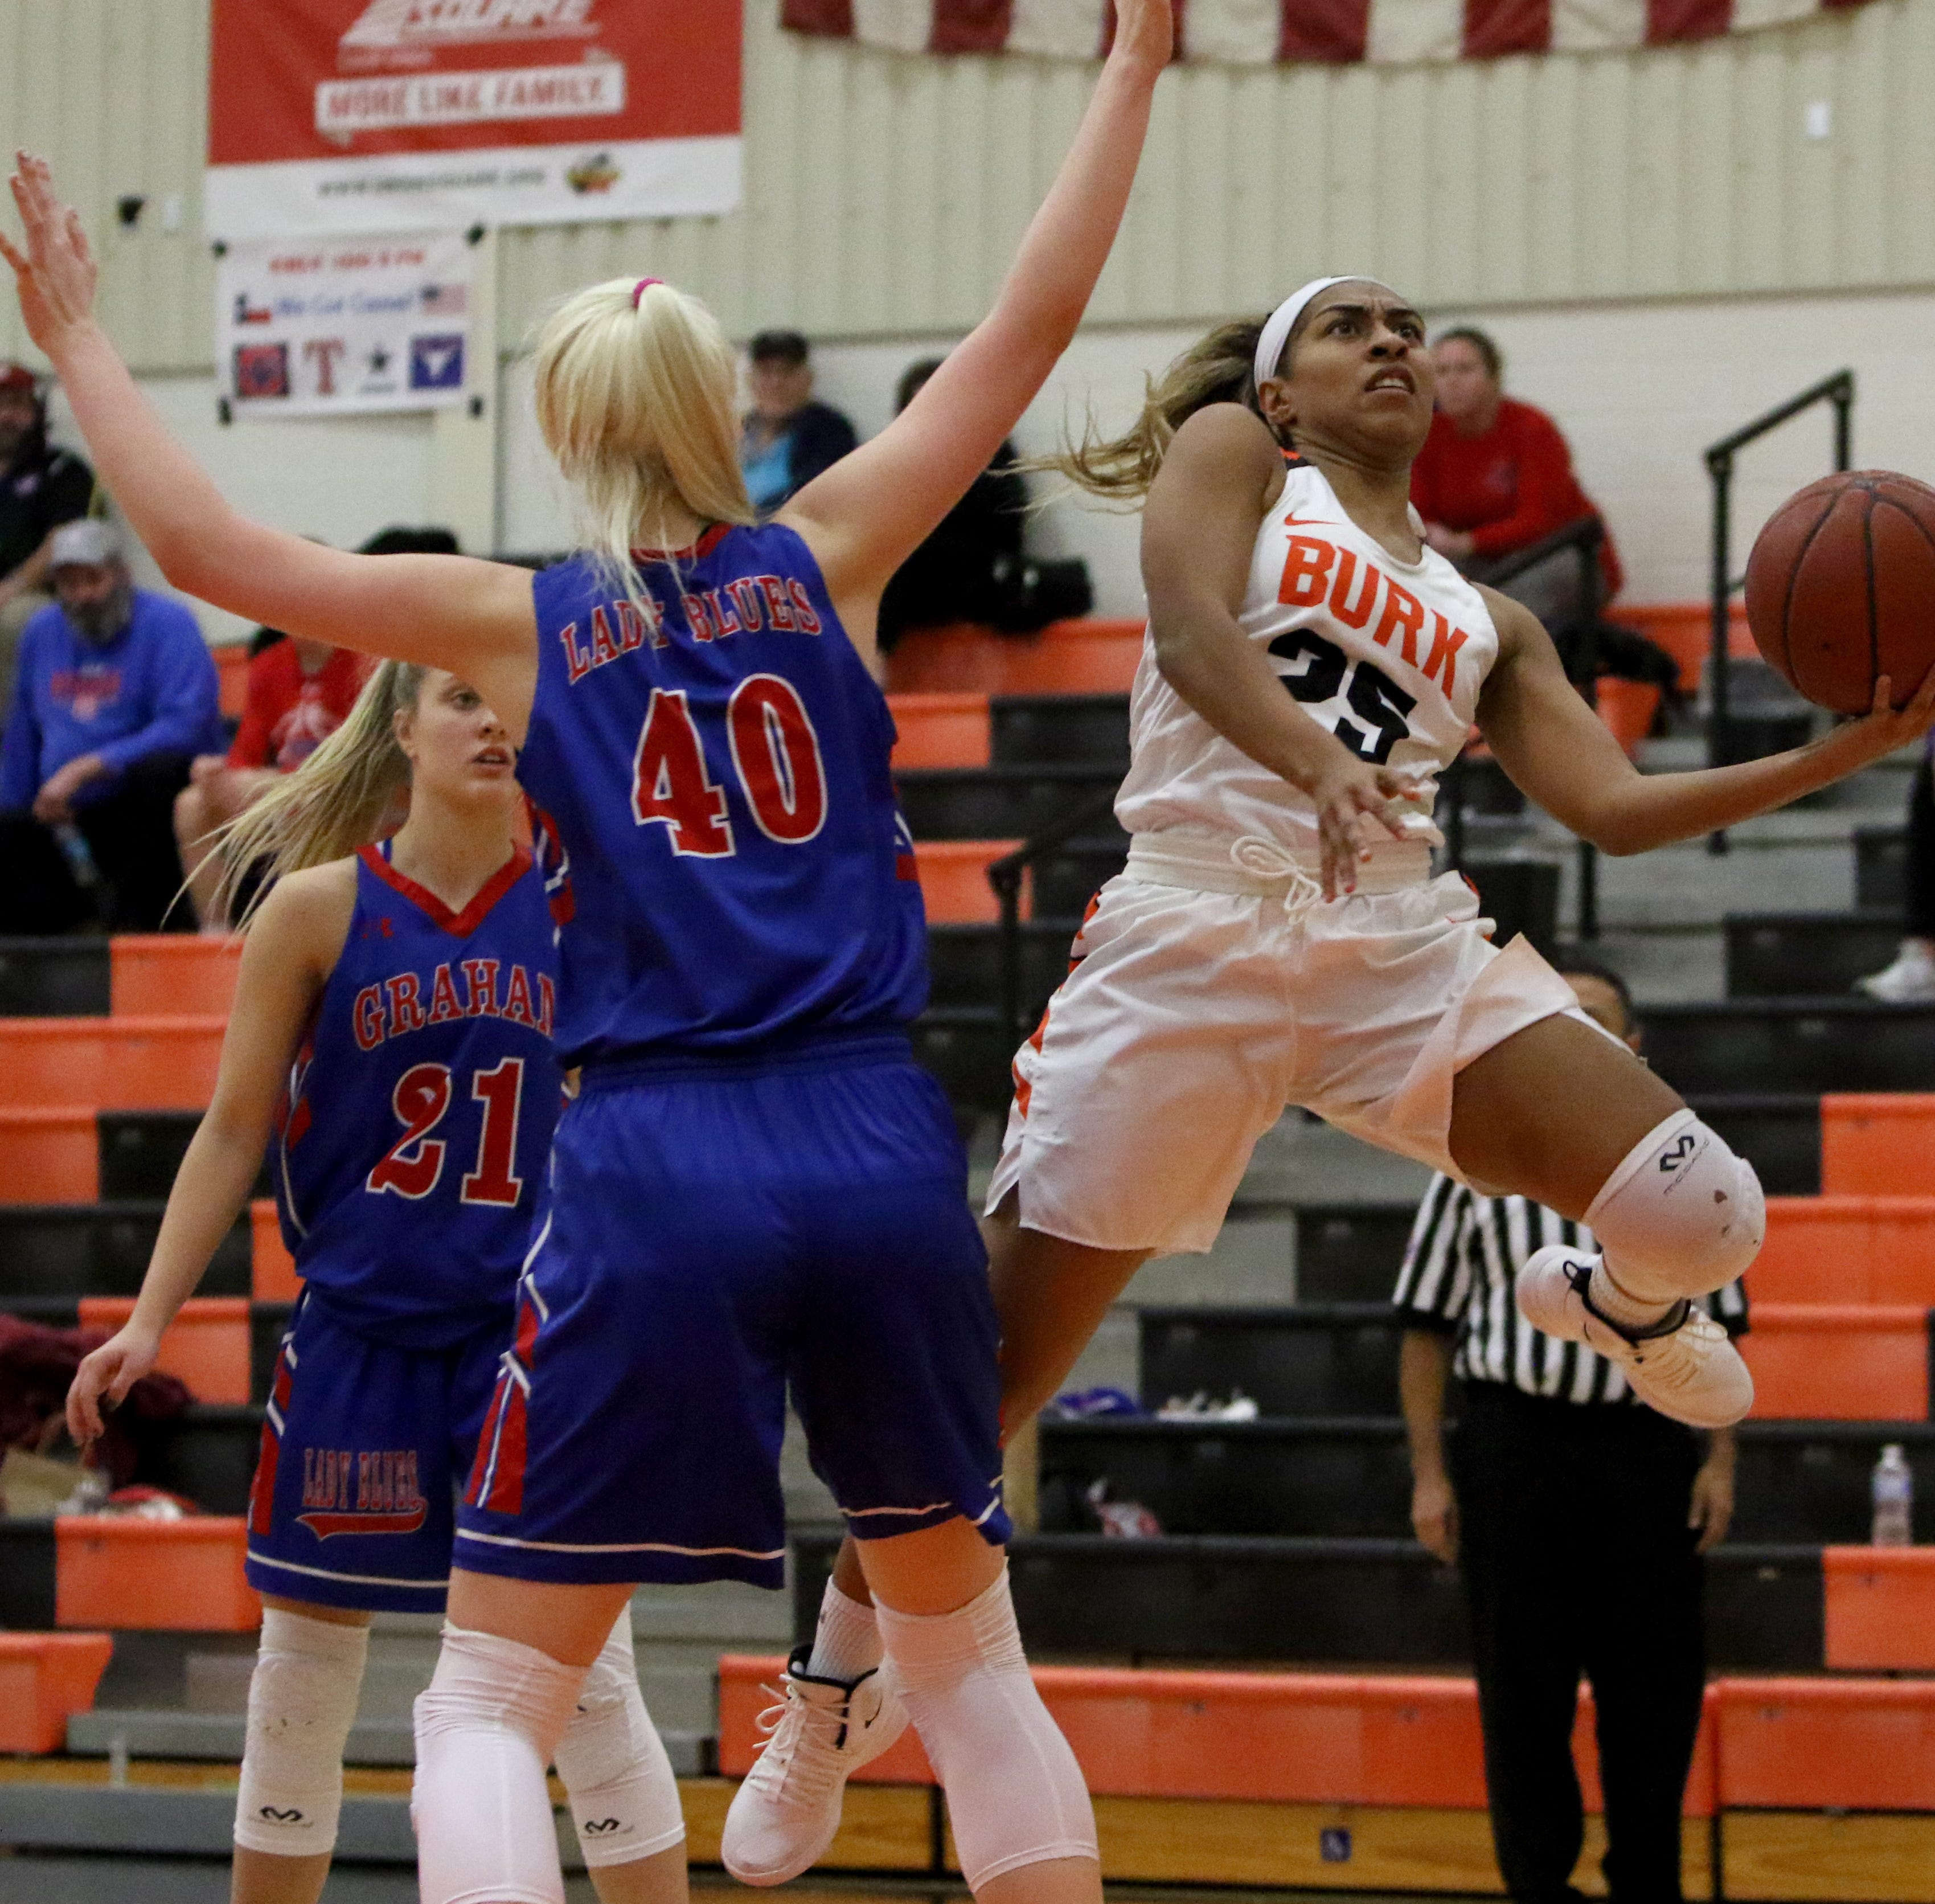 Sisters Eternity and Paradize Jackson left lasting legacy for Burkburnett basketball